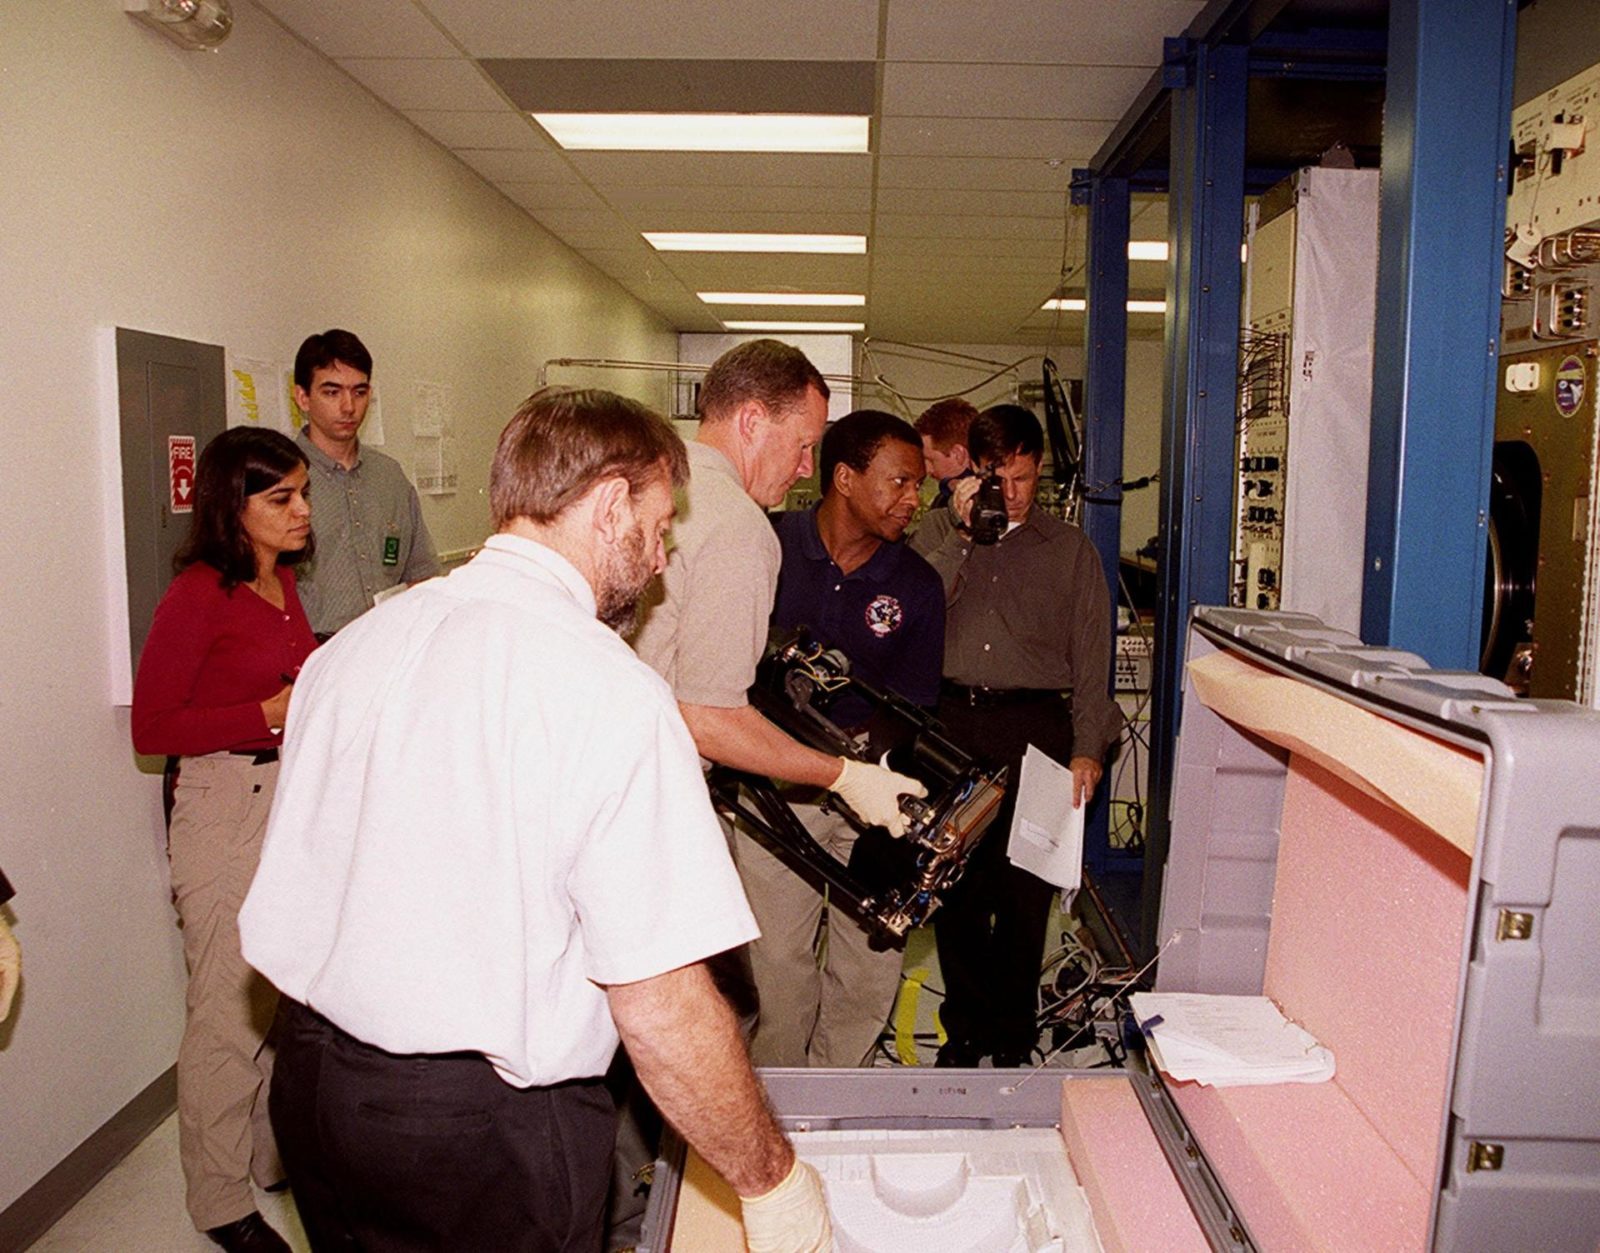 KENNEDY SPACE CENTER, FLA. -- At SPACEHAB, STS-107 crew members check out equipment for their mission. At the far left are Mission Specialists Kalpana Chawla and Ilan Ramon, who is from Israel. At center, handling the equipment, are Mission Specialists David Brown and Michael Anderson. Identified as a research mission, STS-107 is scheduled for launch July 19, 2001 KSC-00pp1593